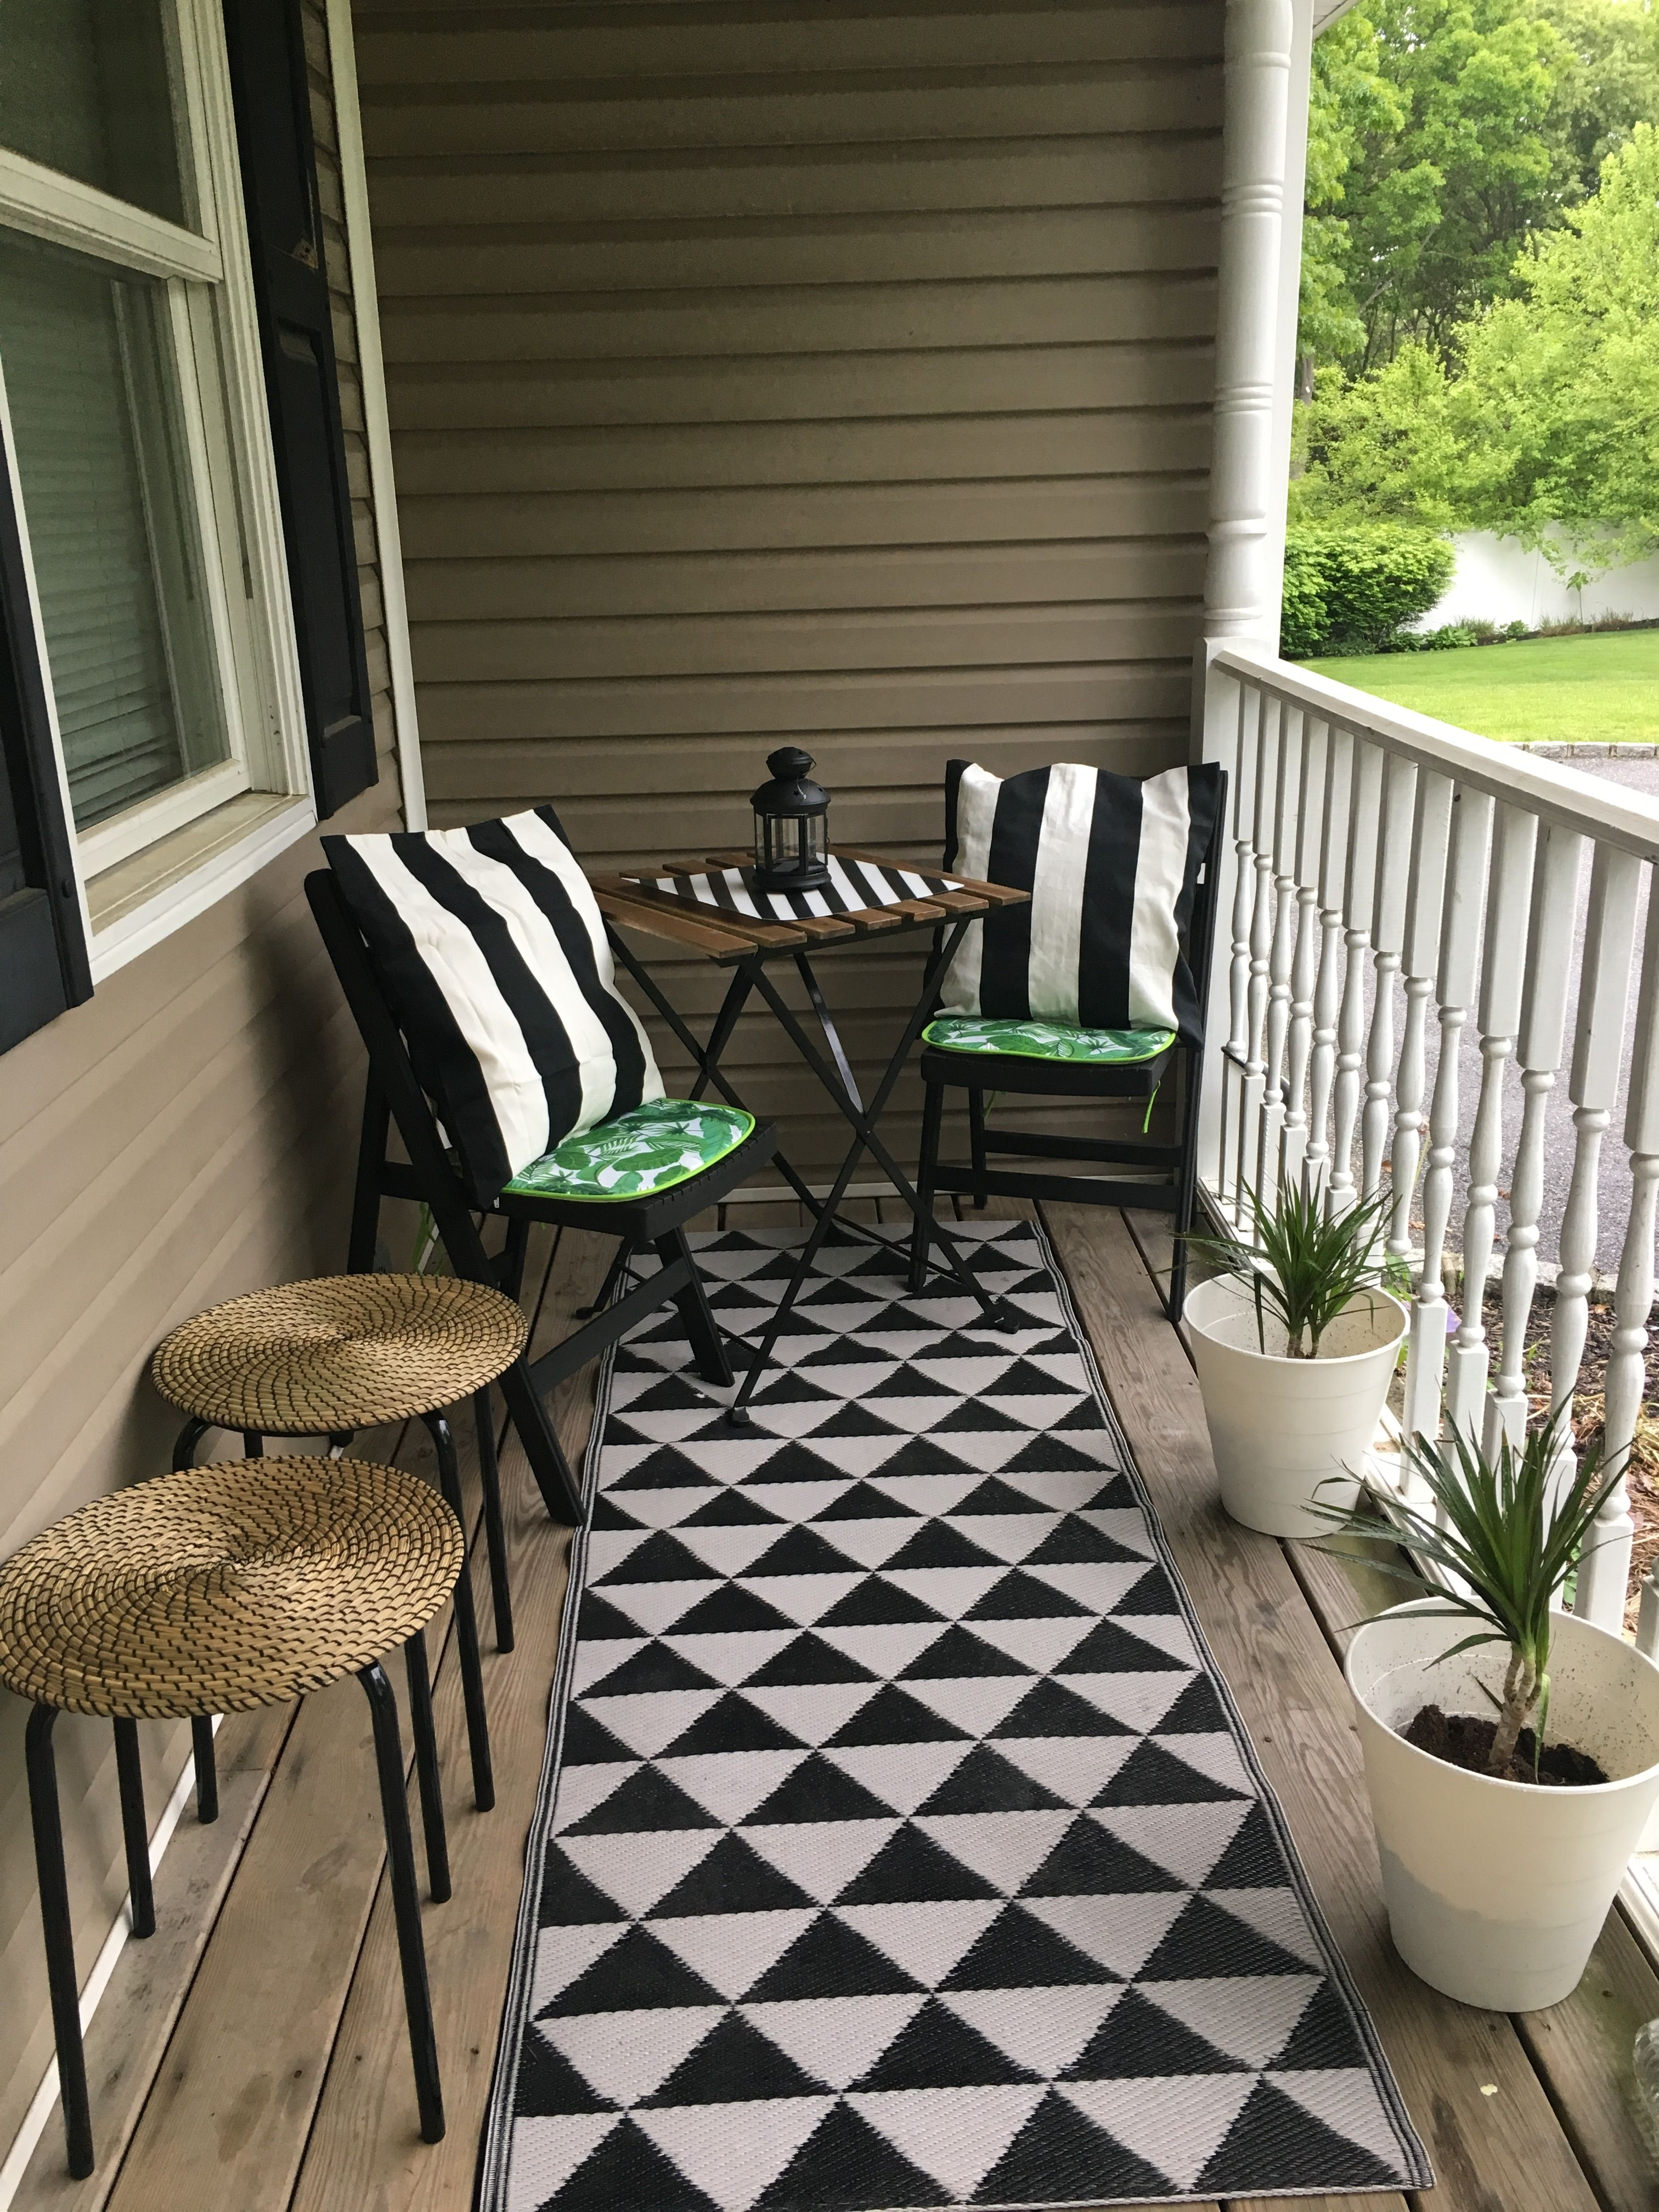 A Modern Black And White Patio Created For 72 Using Ikea And Dollar Tree Items Summer 2018 I Found The Chai Ikea Patio Rustic Patio Furniture Patio Design